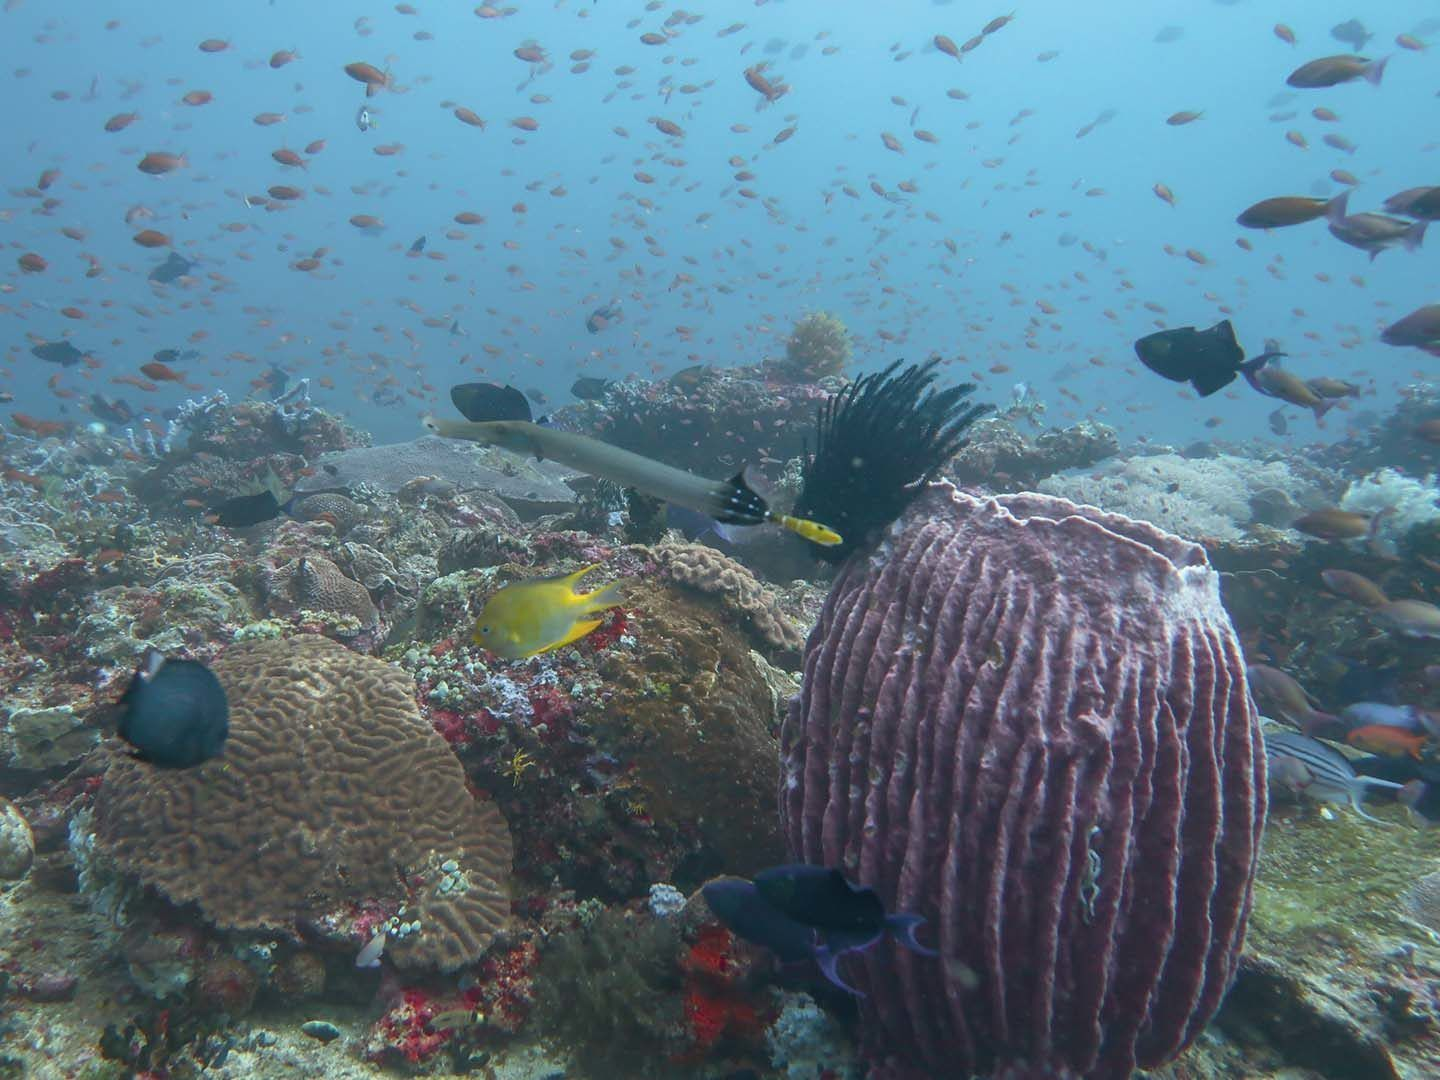 Scuba Diving Experience In Anilao Batangas Philippines Diver Bliss In 2020 Scuba Diving Best Scuba Diving Underwater Photography